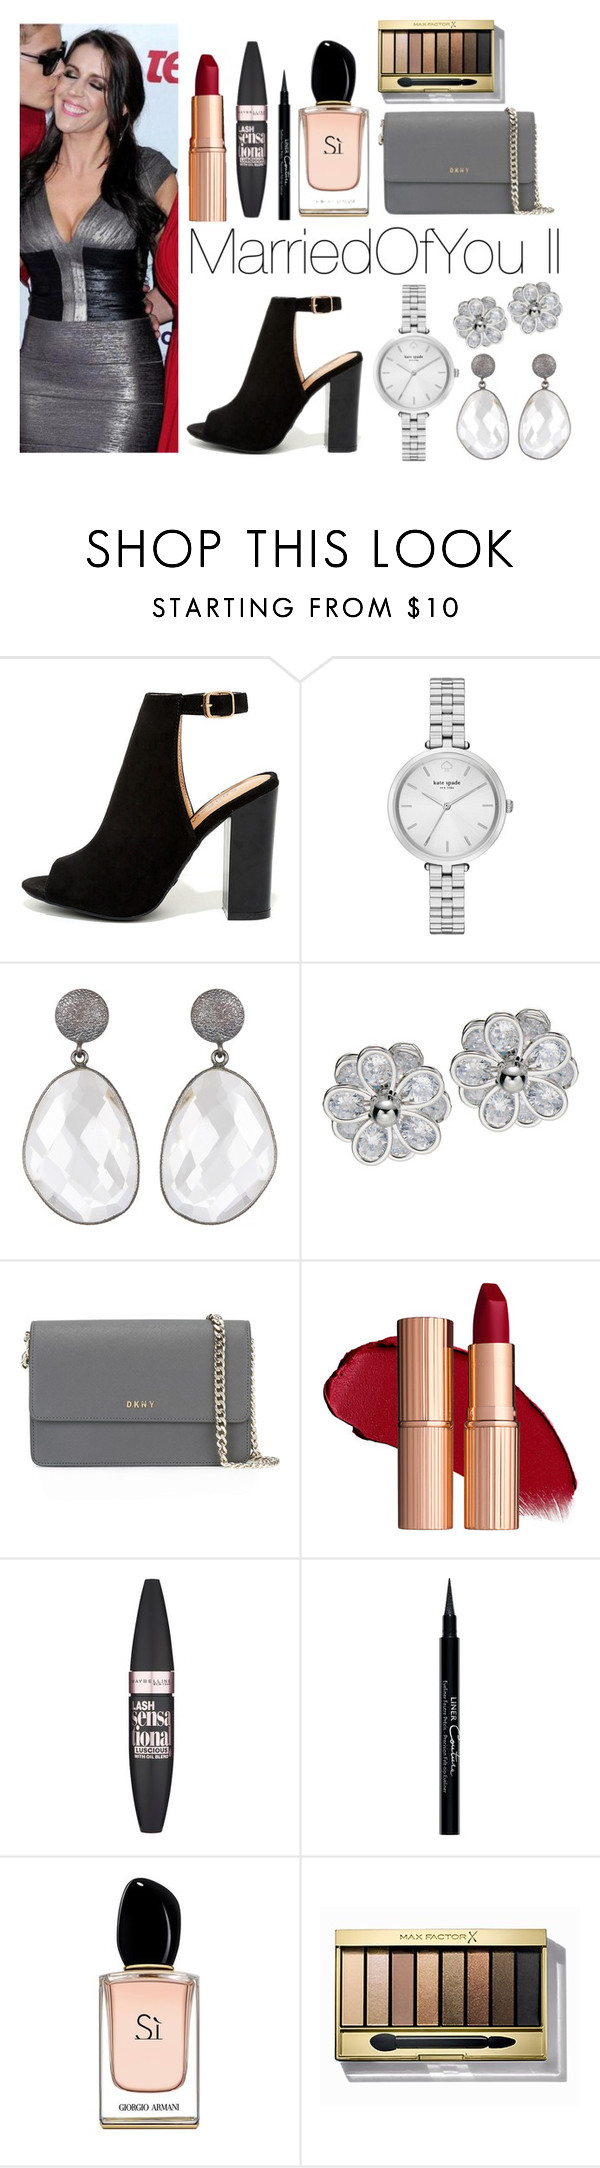 """Marriedofyou II"" by meliiissav ❤ liked on Polyvore featuring Bamboo, Kate Spade, DKNY, Maybelline, Givenchy, Armani Beauty and Max Factor"